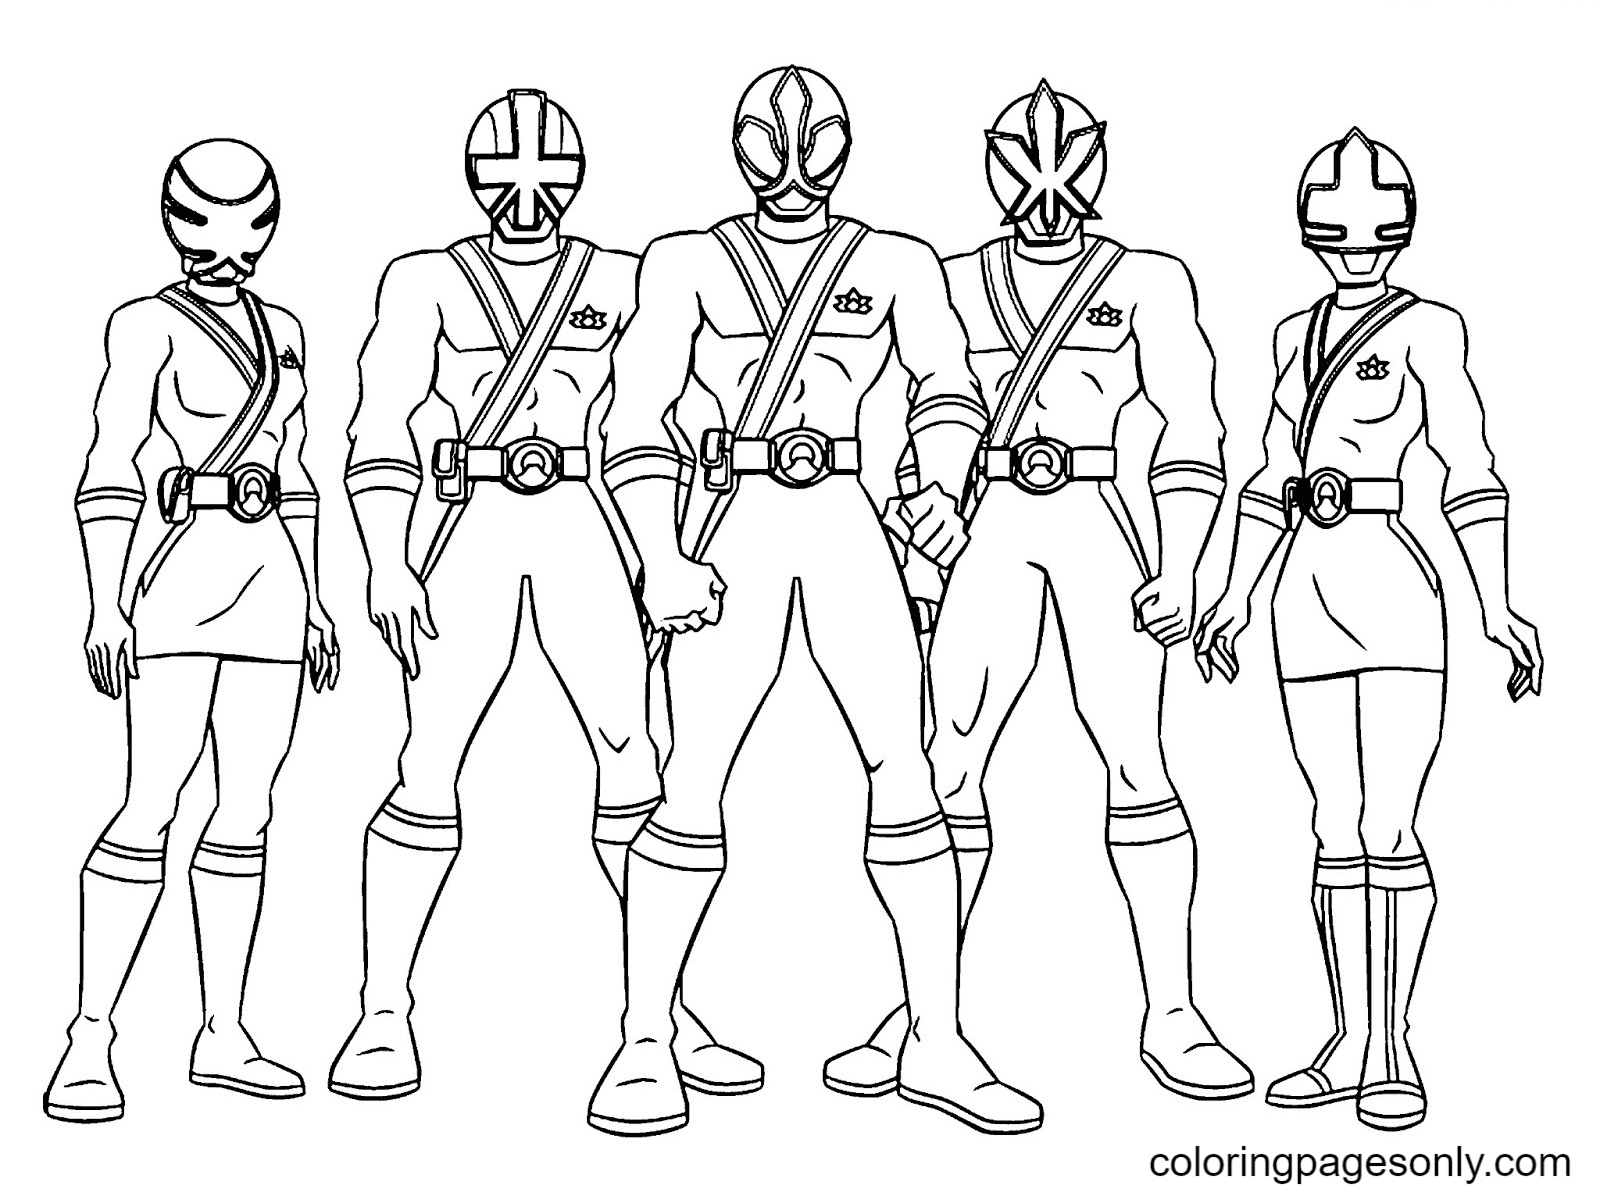 Group of Power Rangers Coloring Page